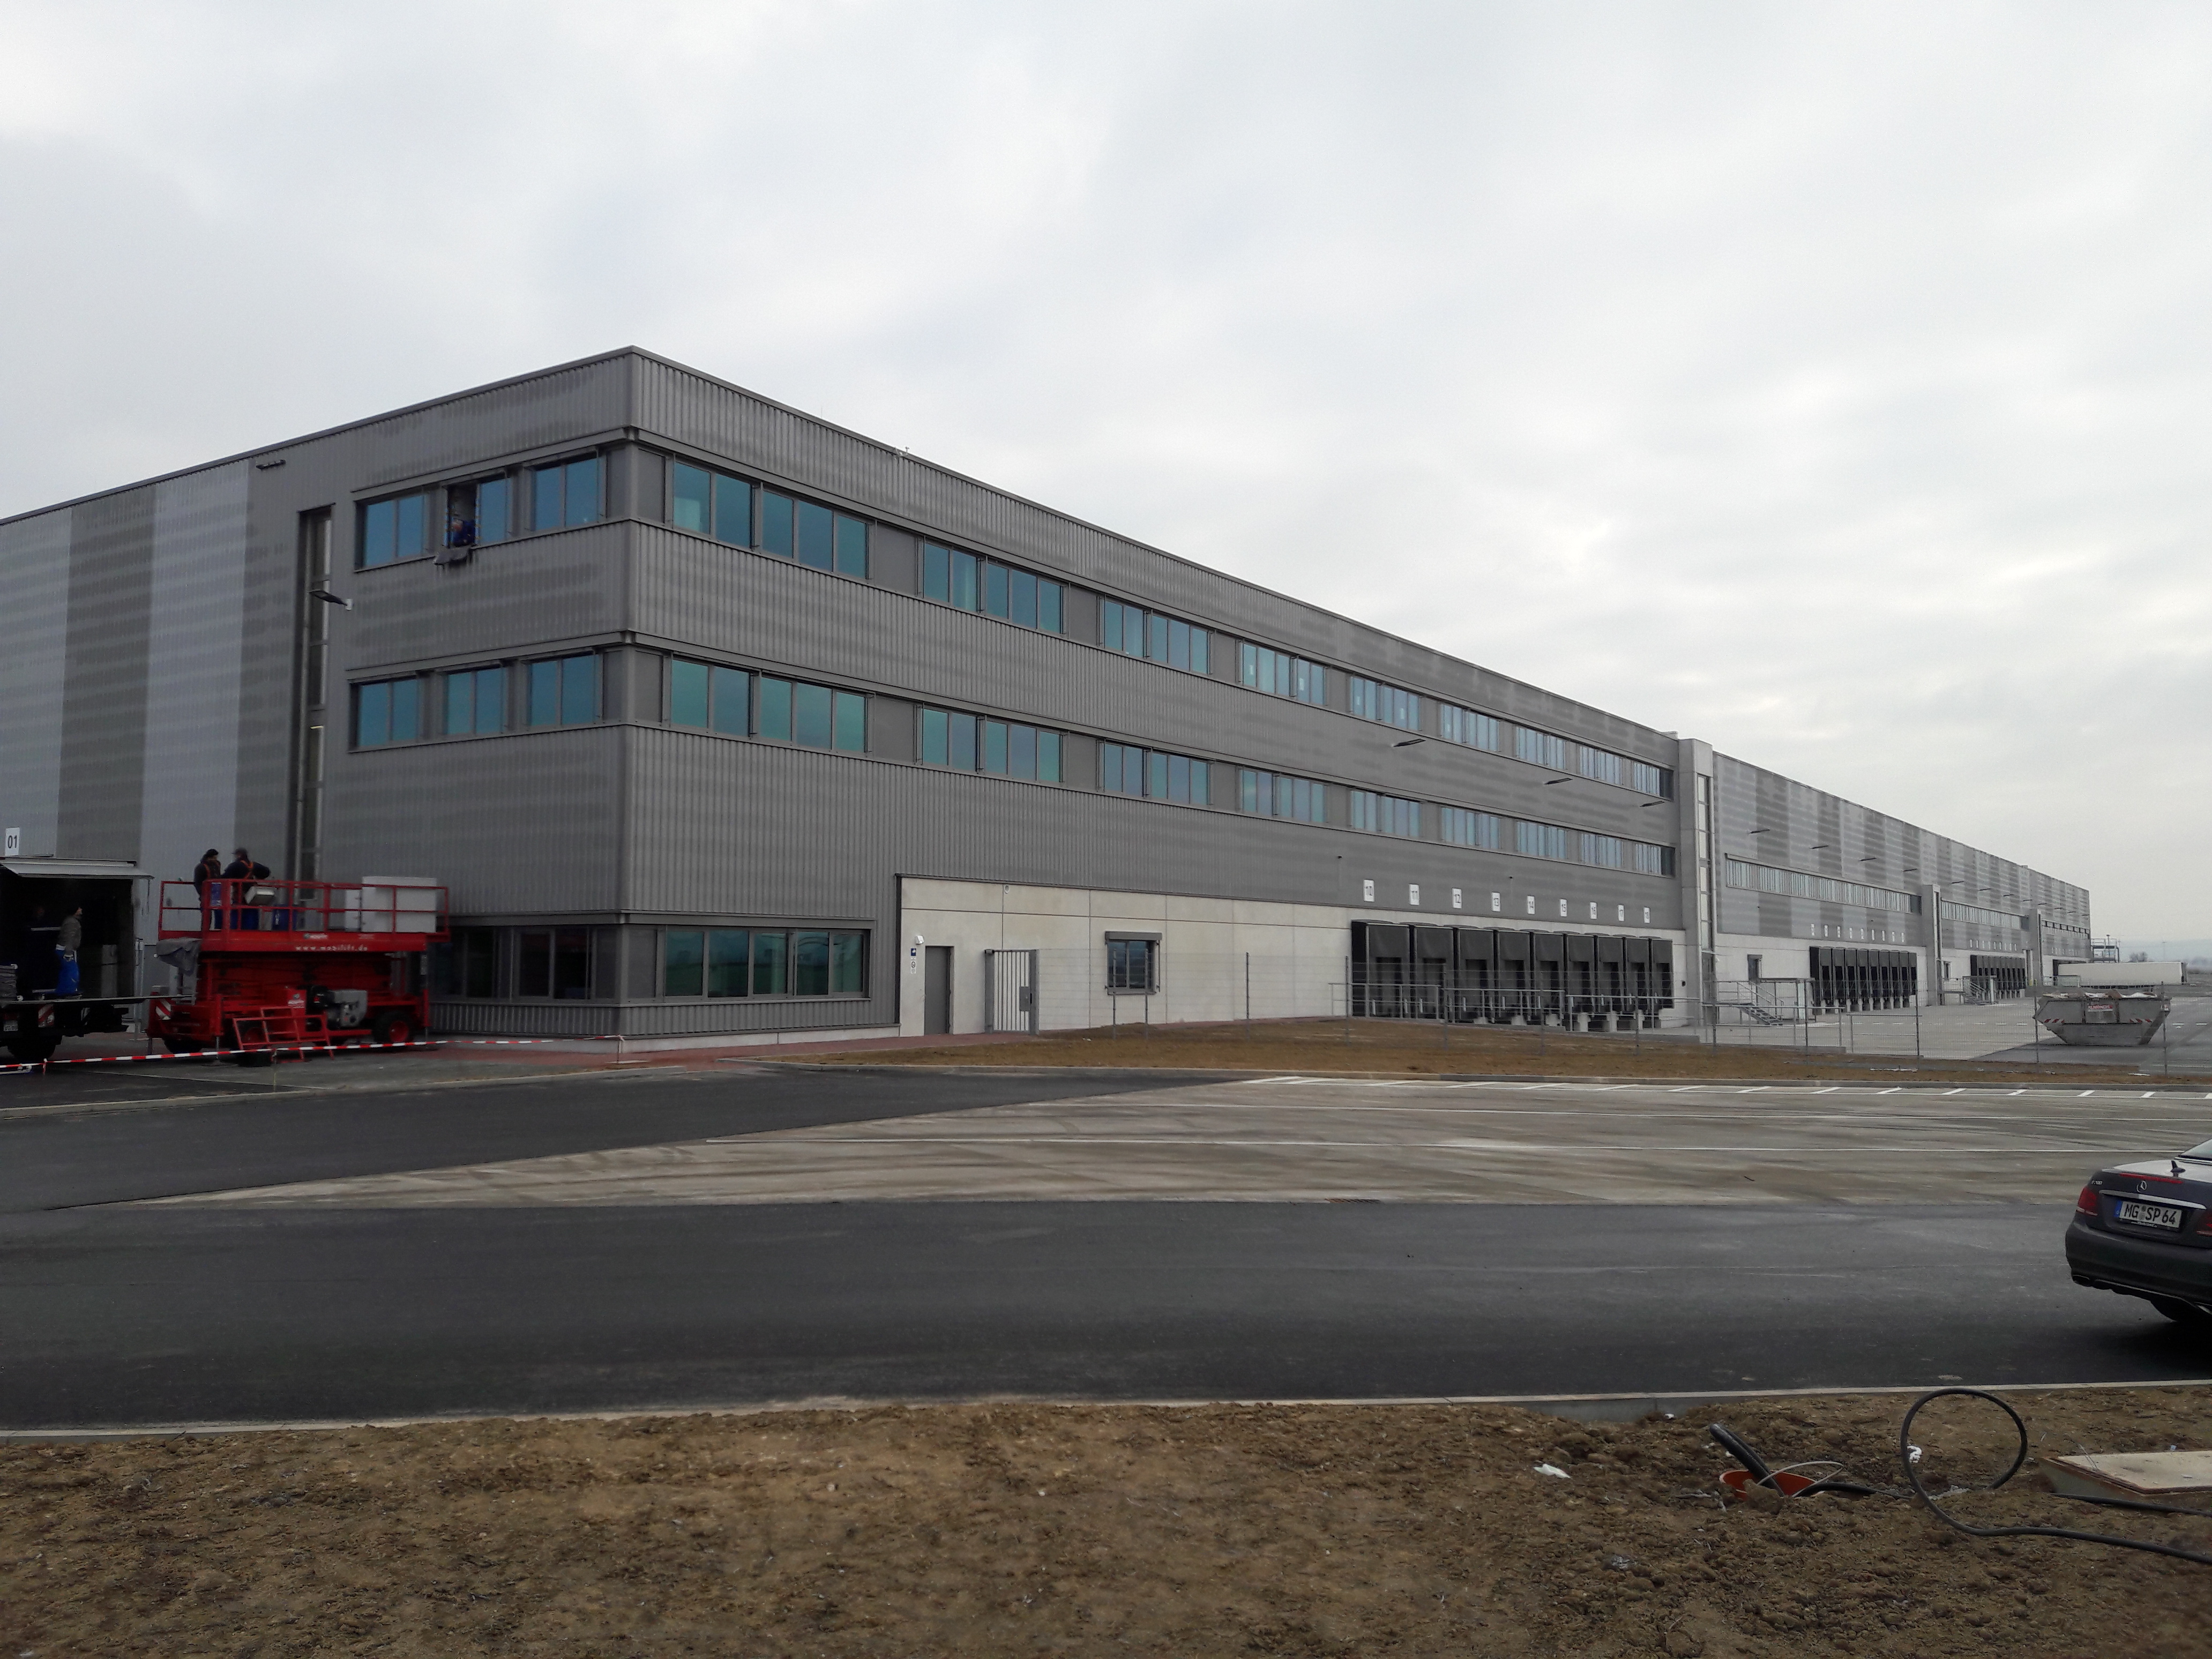 DHL Logistikzentrum Euskirchen